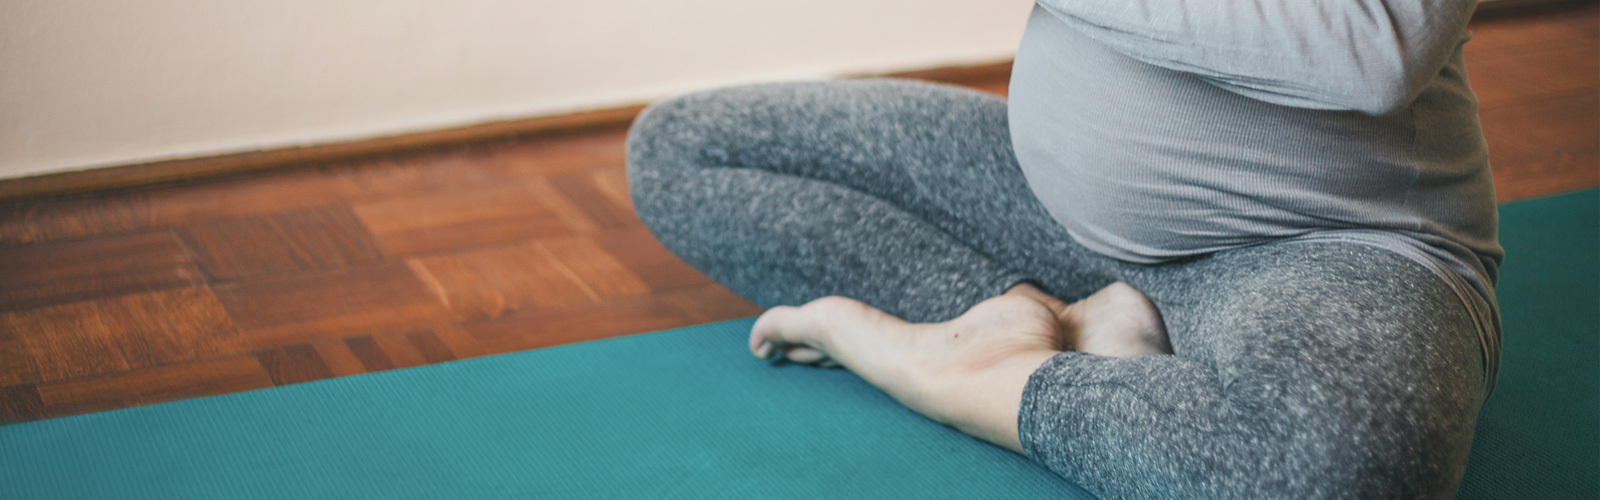 Pregnant woman sitting in a yoga position